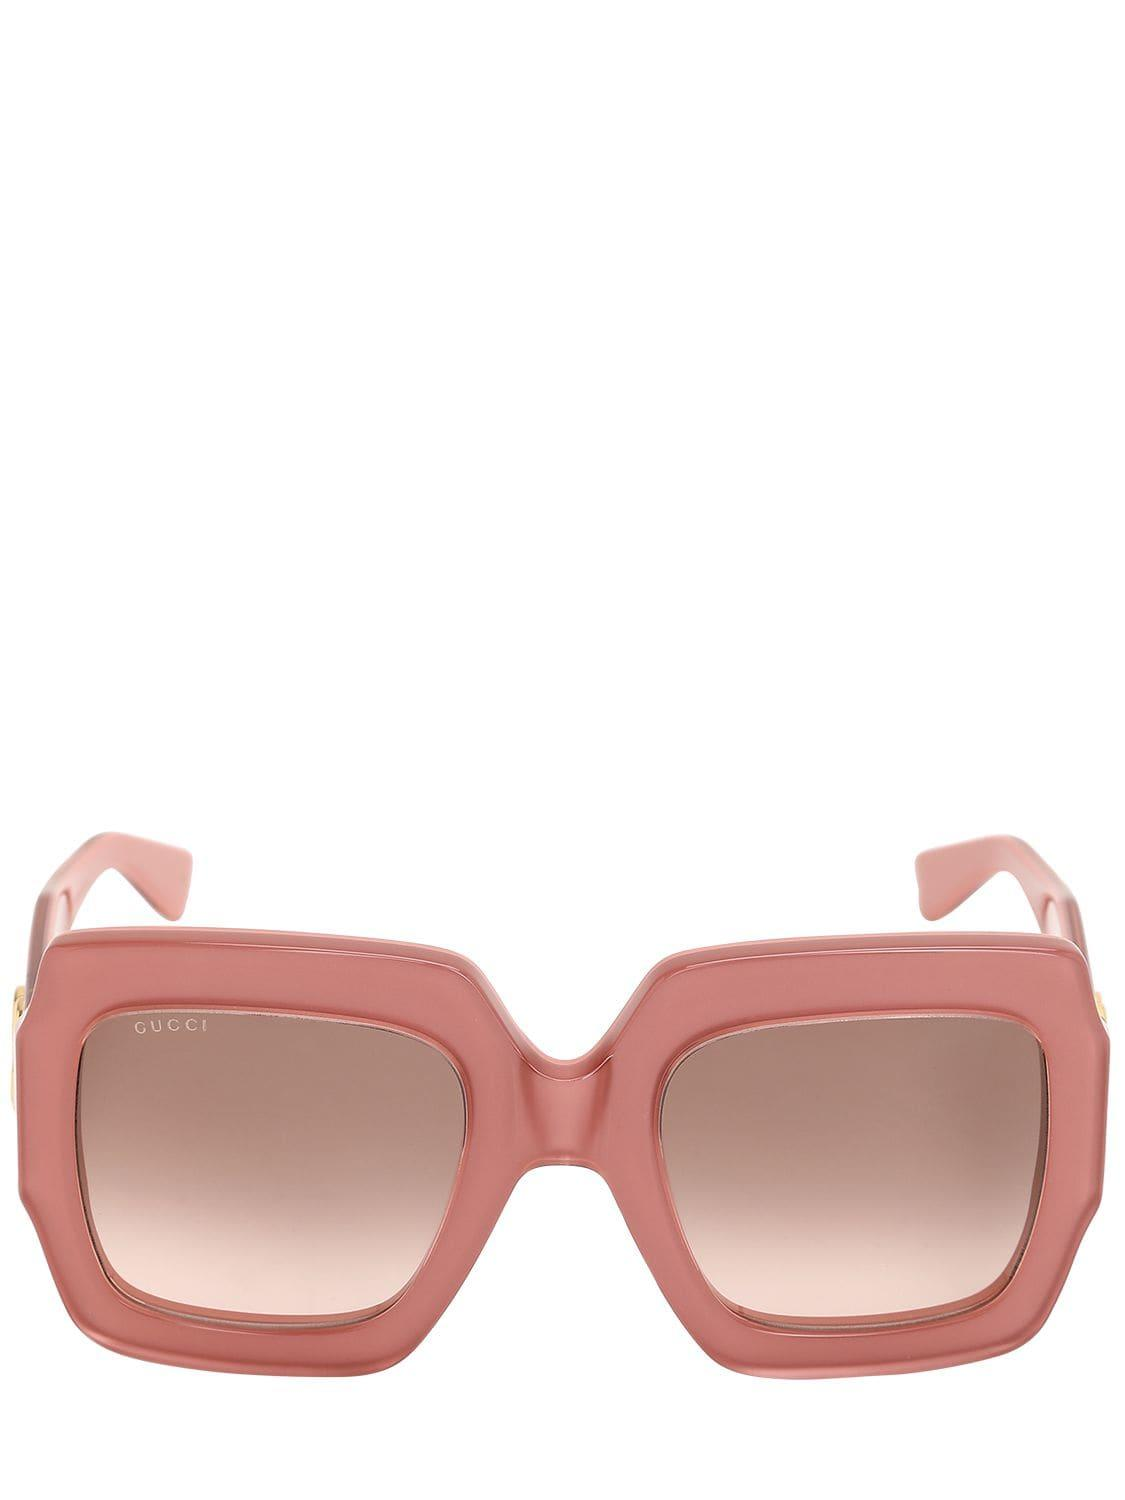 31a5dc660ed60 Lyst - Gucci Gg Logo Glossy Acetate Sunglasses in Pink